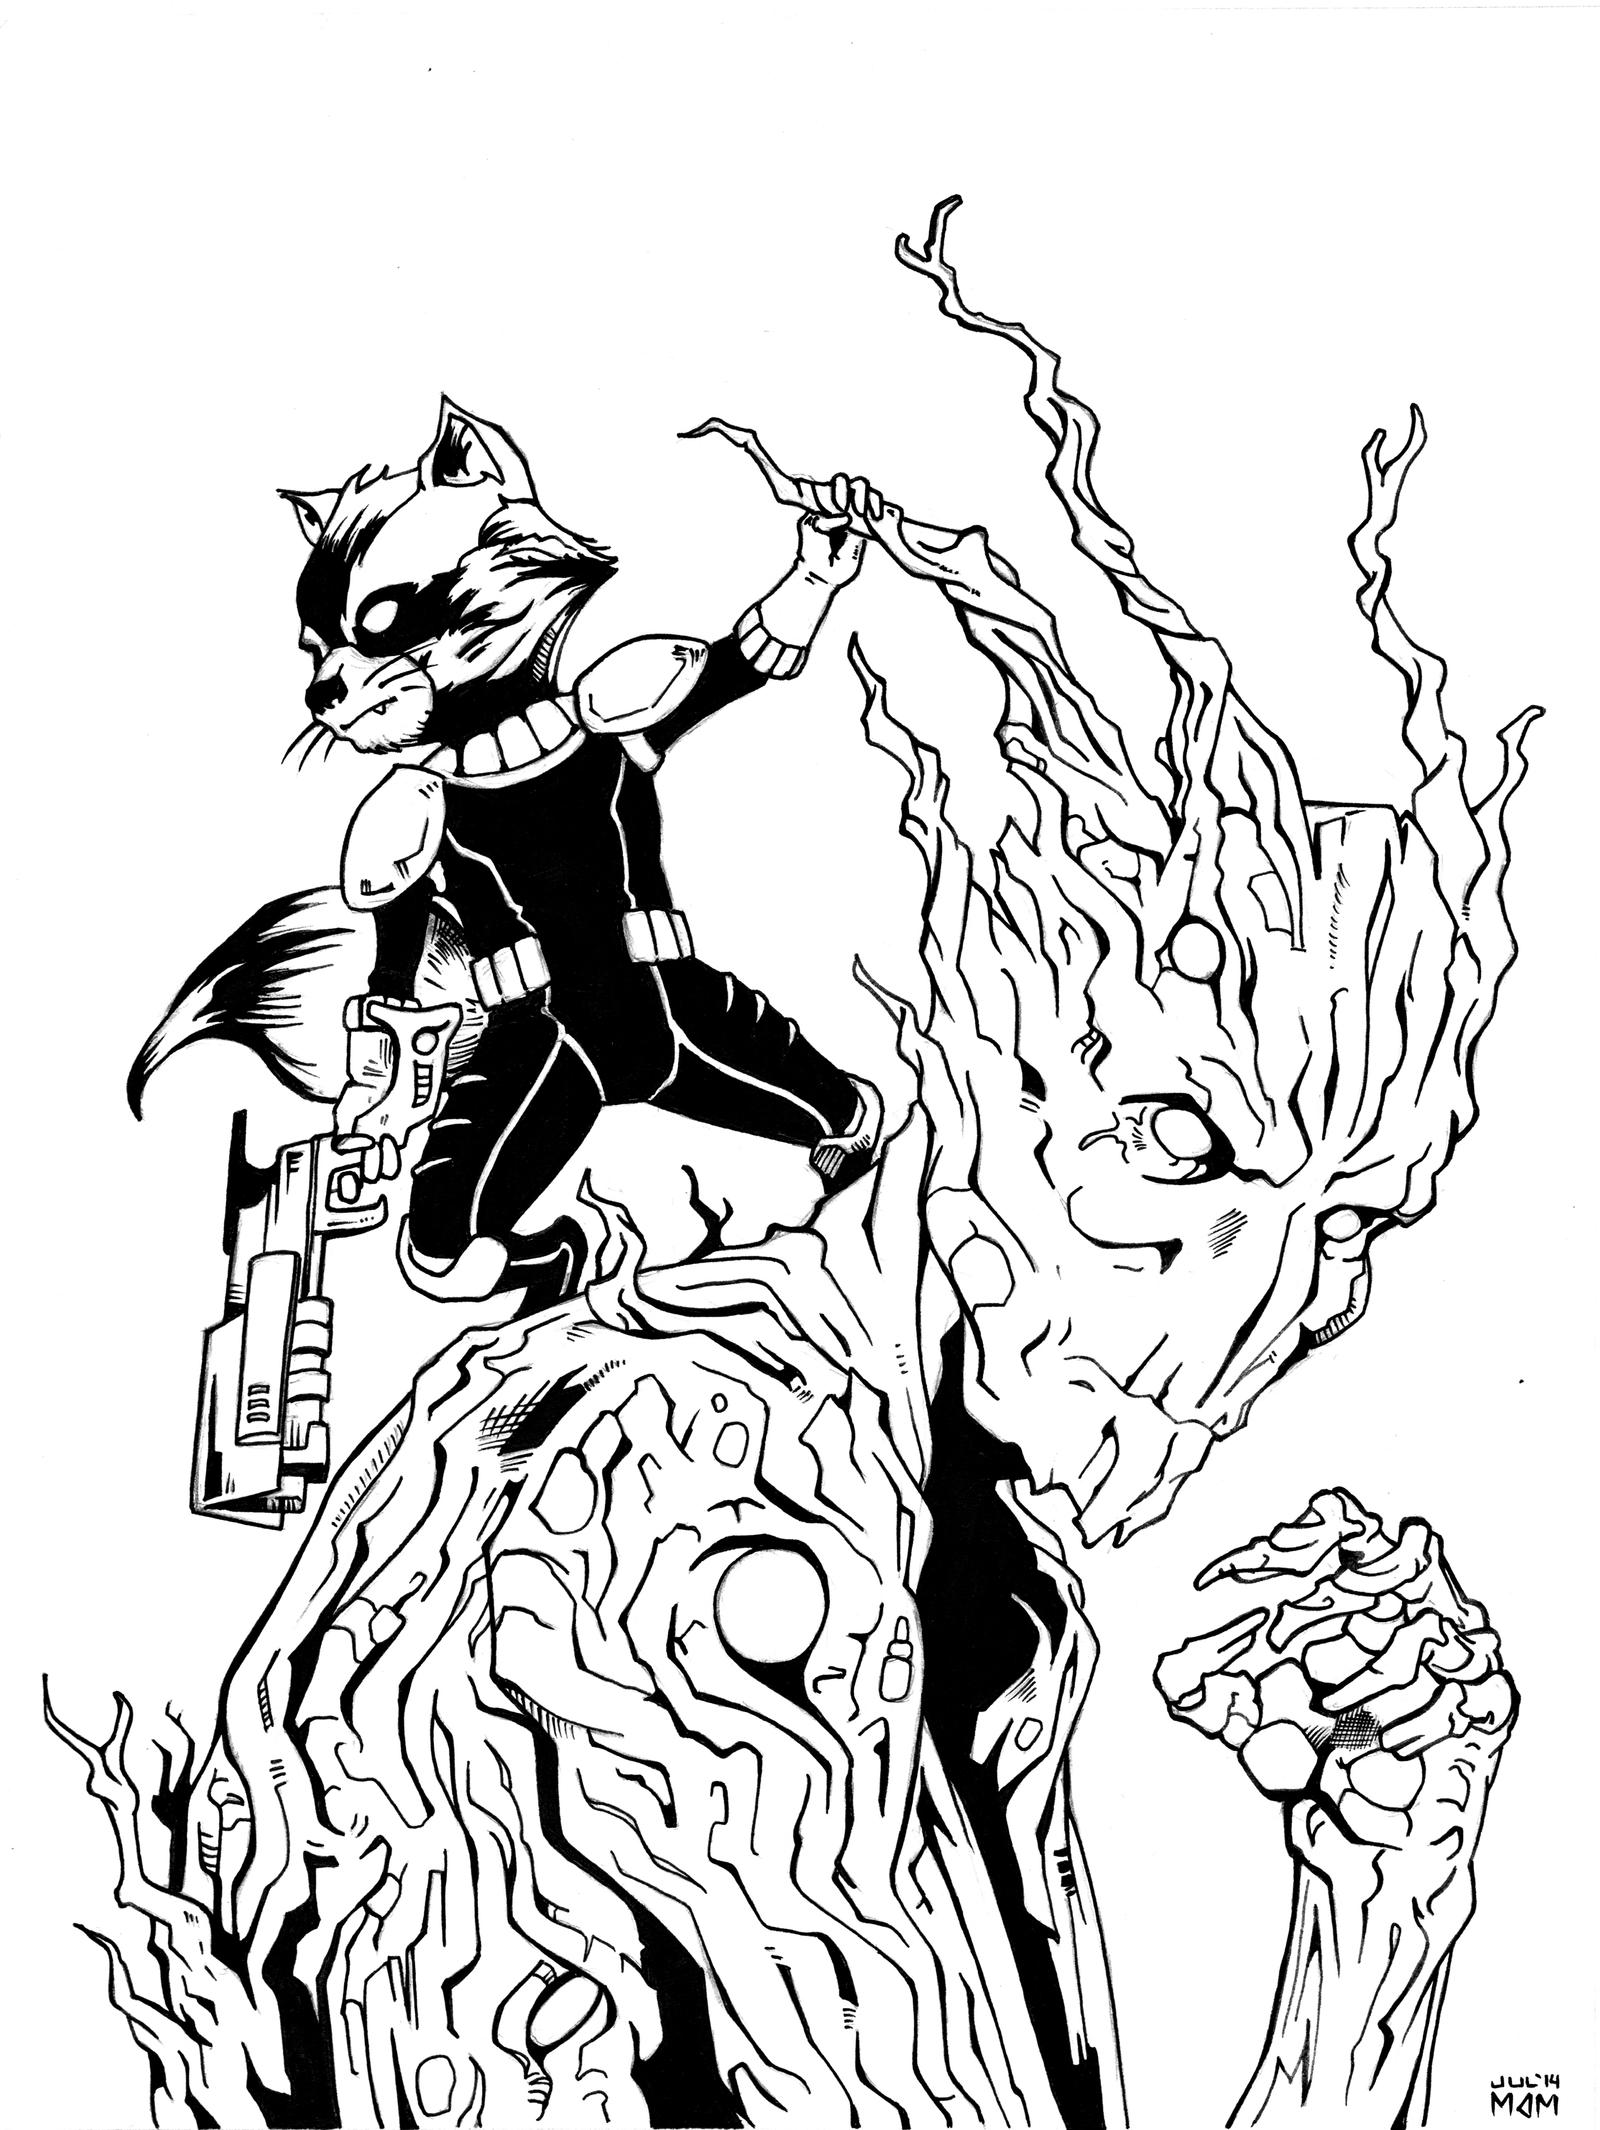 Star Lord And Rocket Raccoon By Timothygreenii On Deviantart: Rocket Raccoon And Groot Inks By Mdm10 On DeviantArt